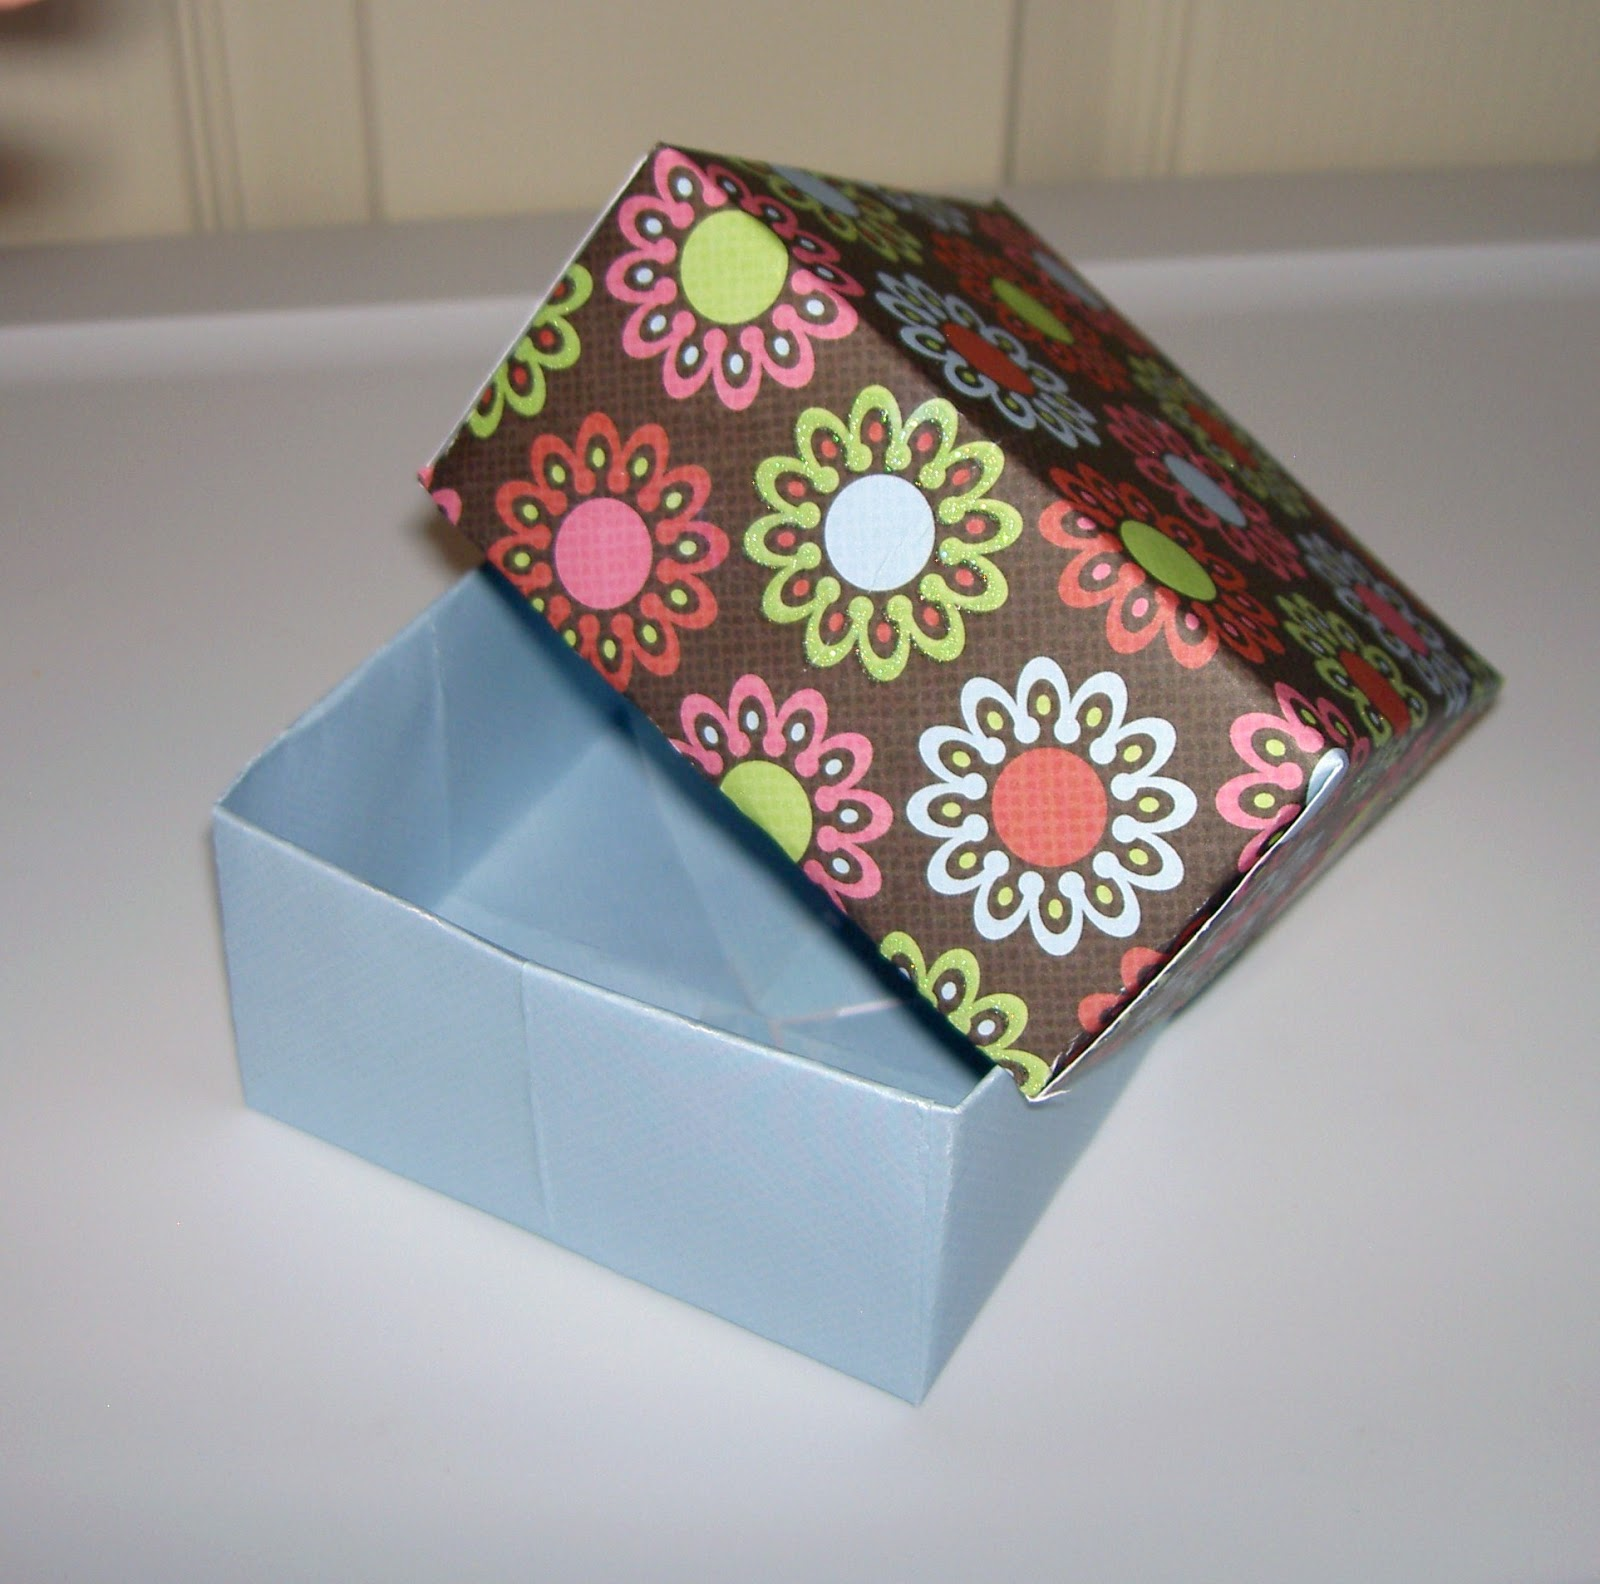 Christensen crafts and such how to make a paper box how to make a paper box jeuxipadfo Image collections